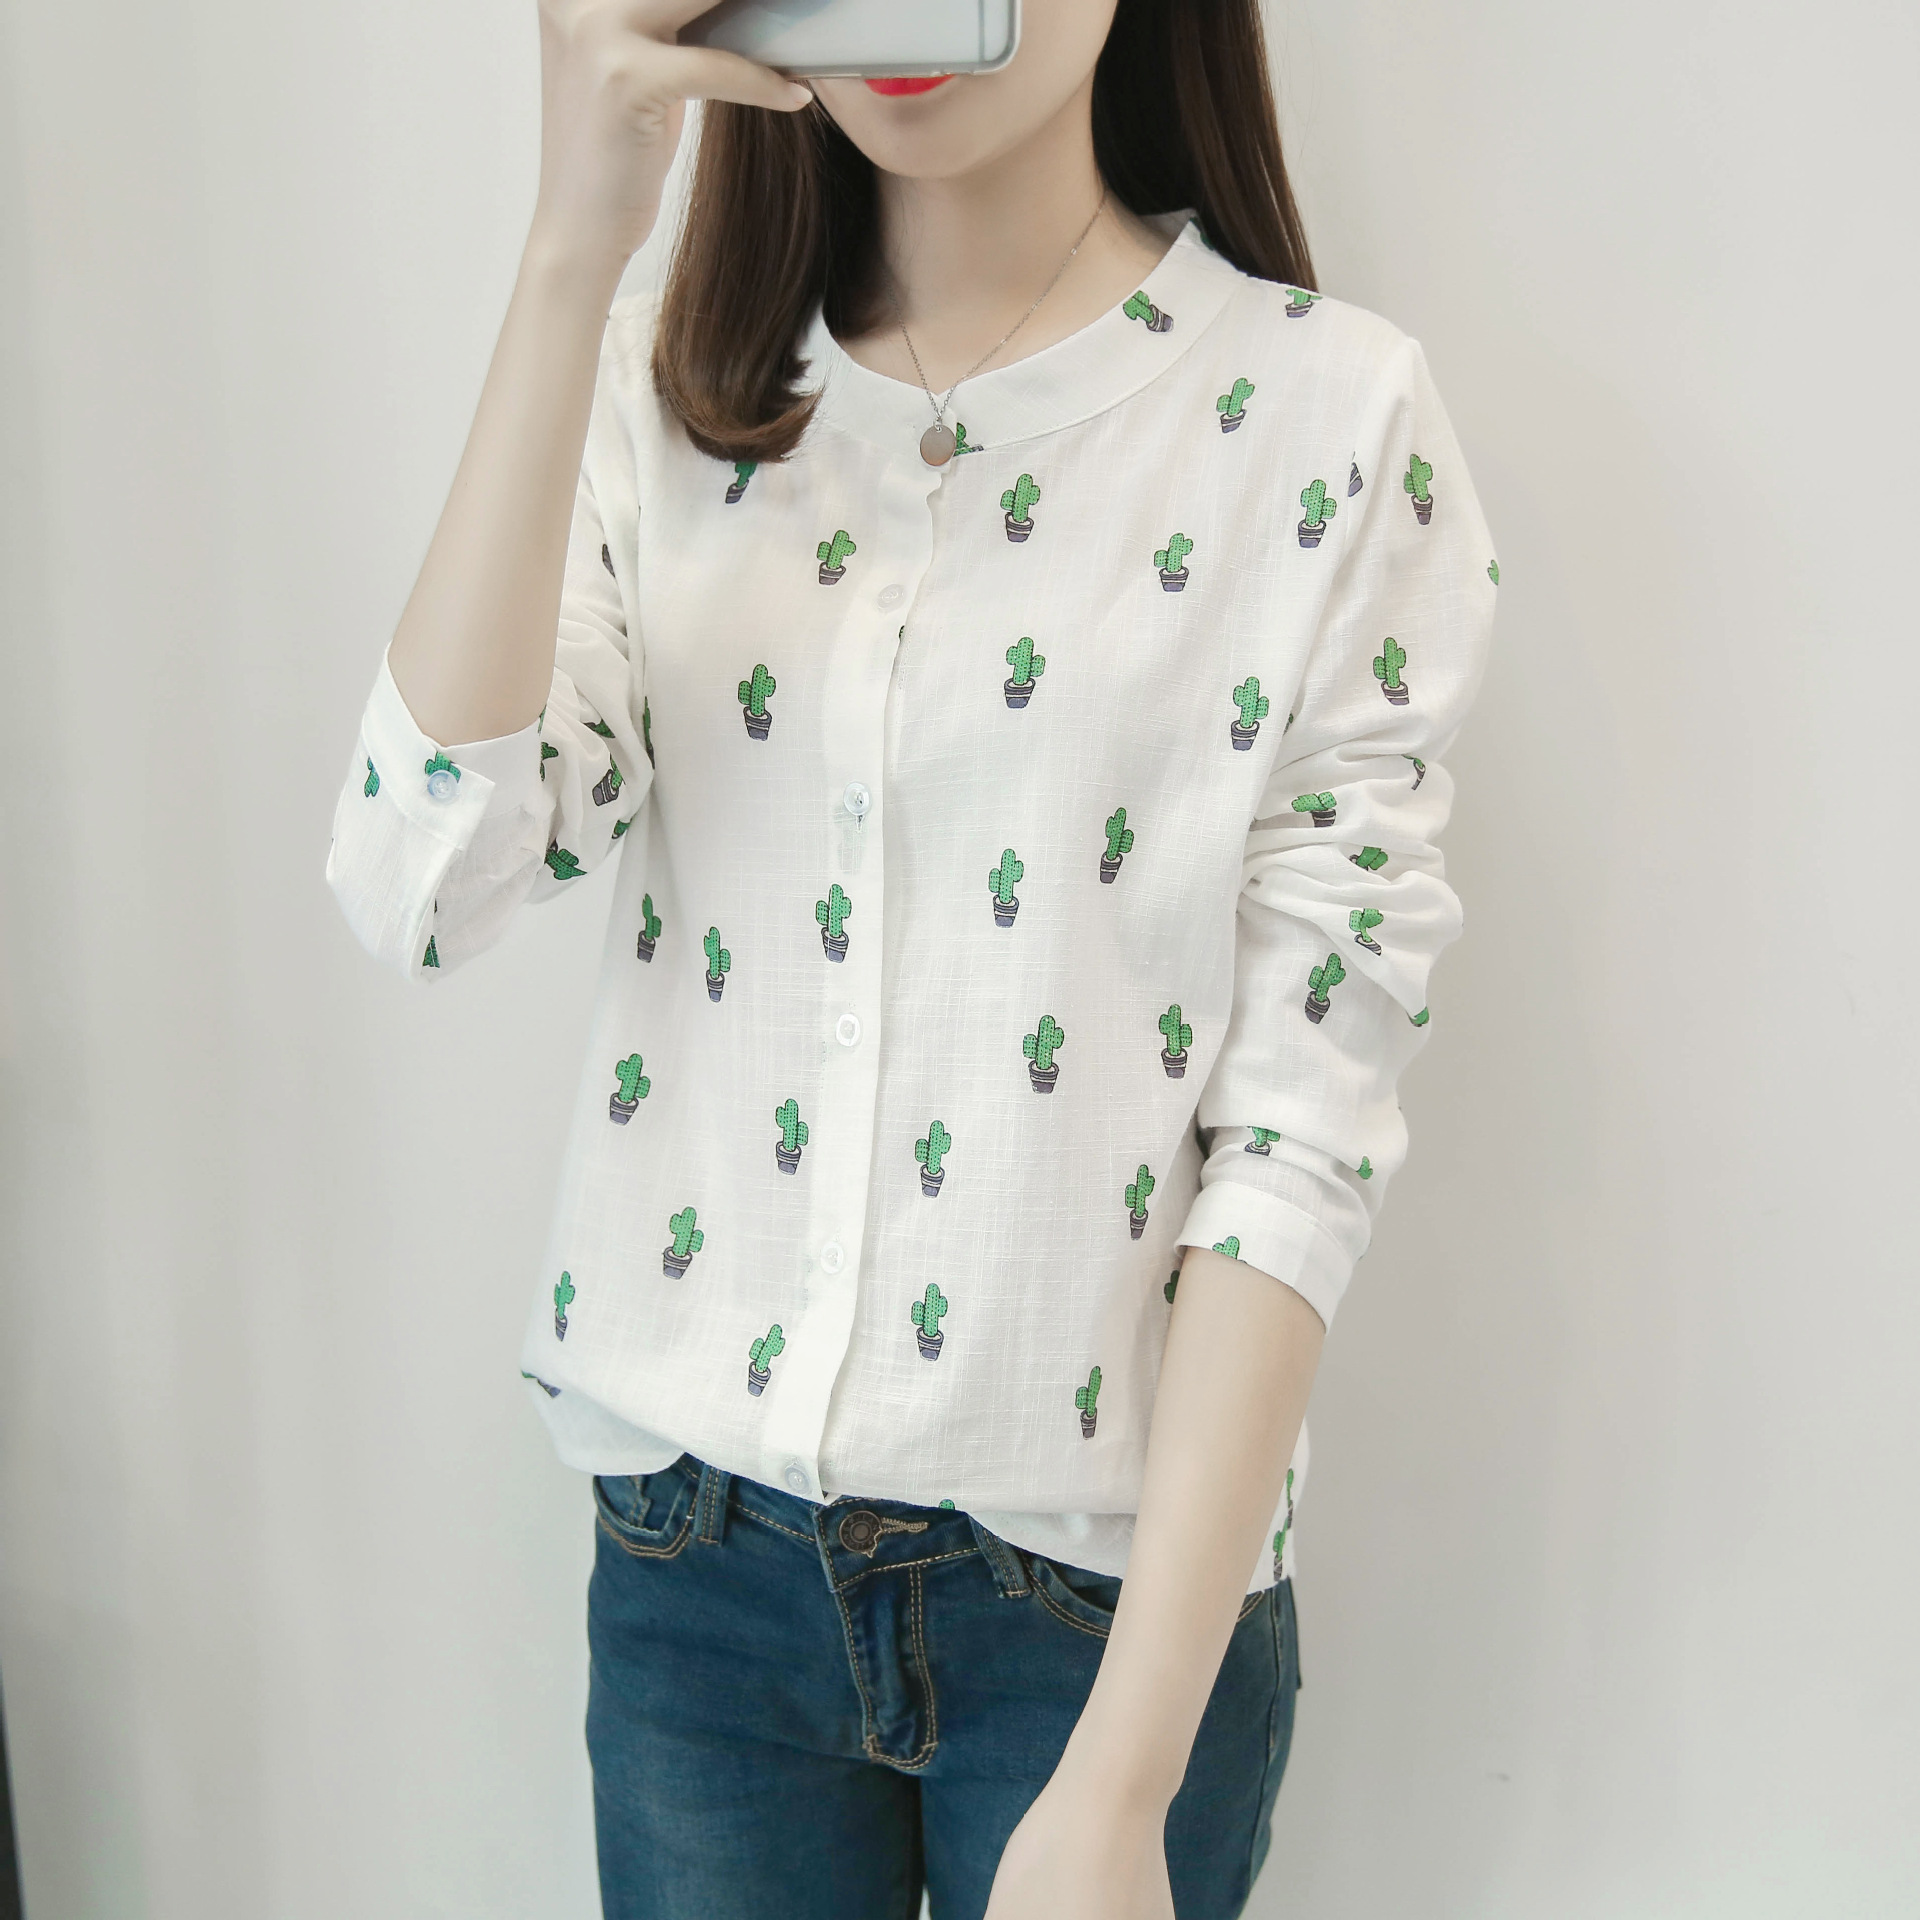 f35de4ff Detail Feedback Questions about 2017 Summer Casual Long Sleeve Women Top  White Floral Printing Button Plus Size Shirt Office Wear Ladies on  Aliexpress.com ...